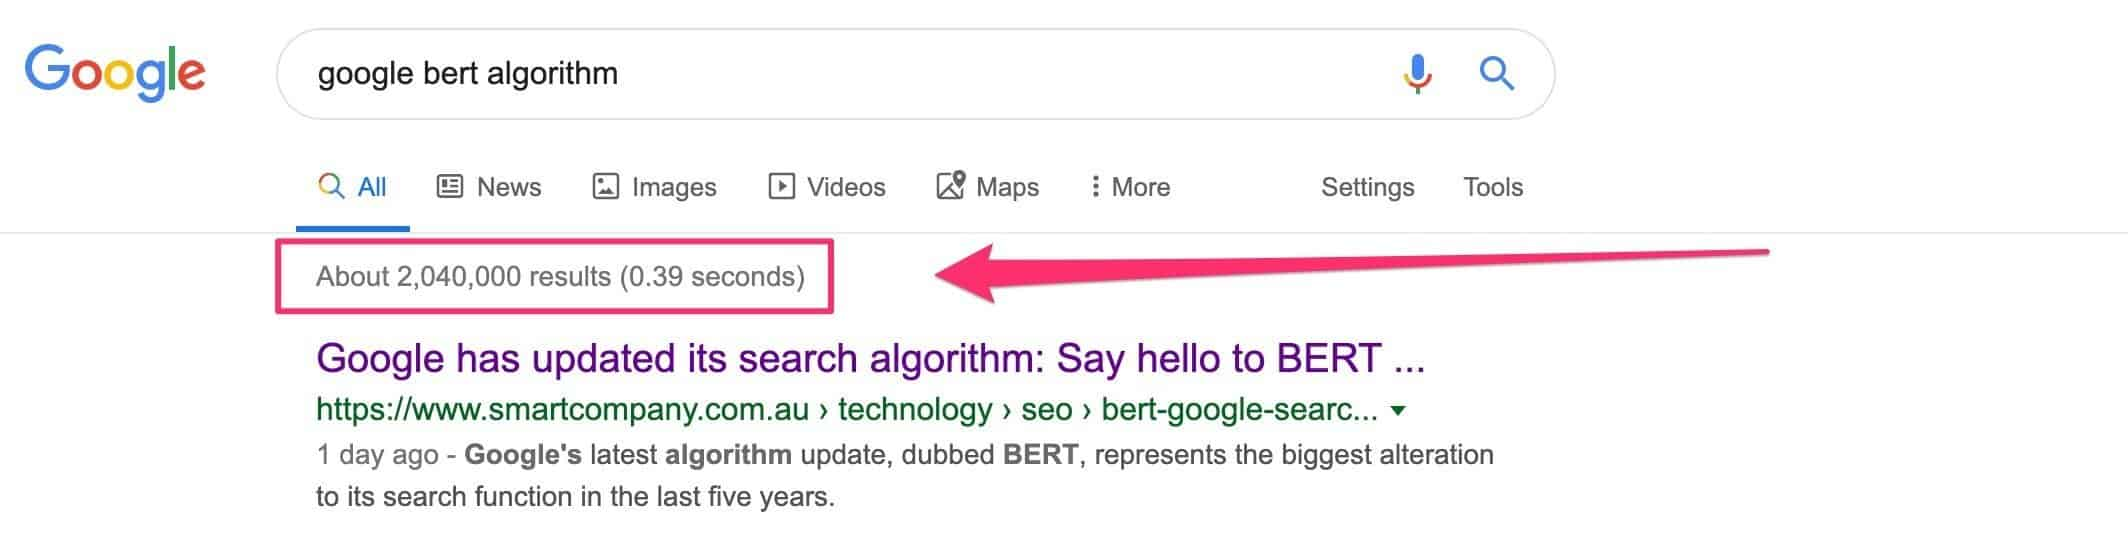 results in Google as a ranking predictor